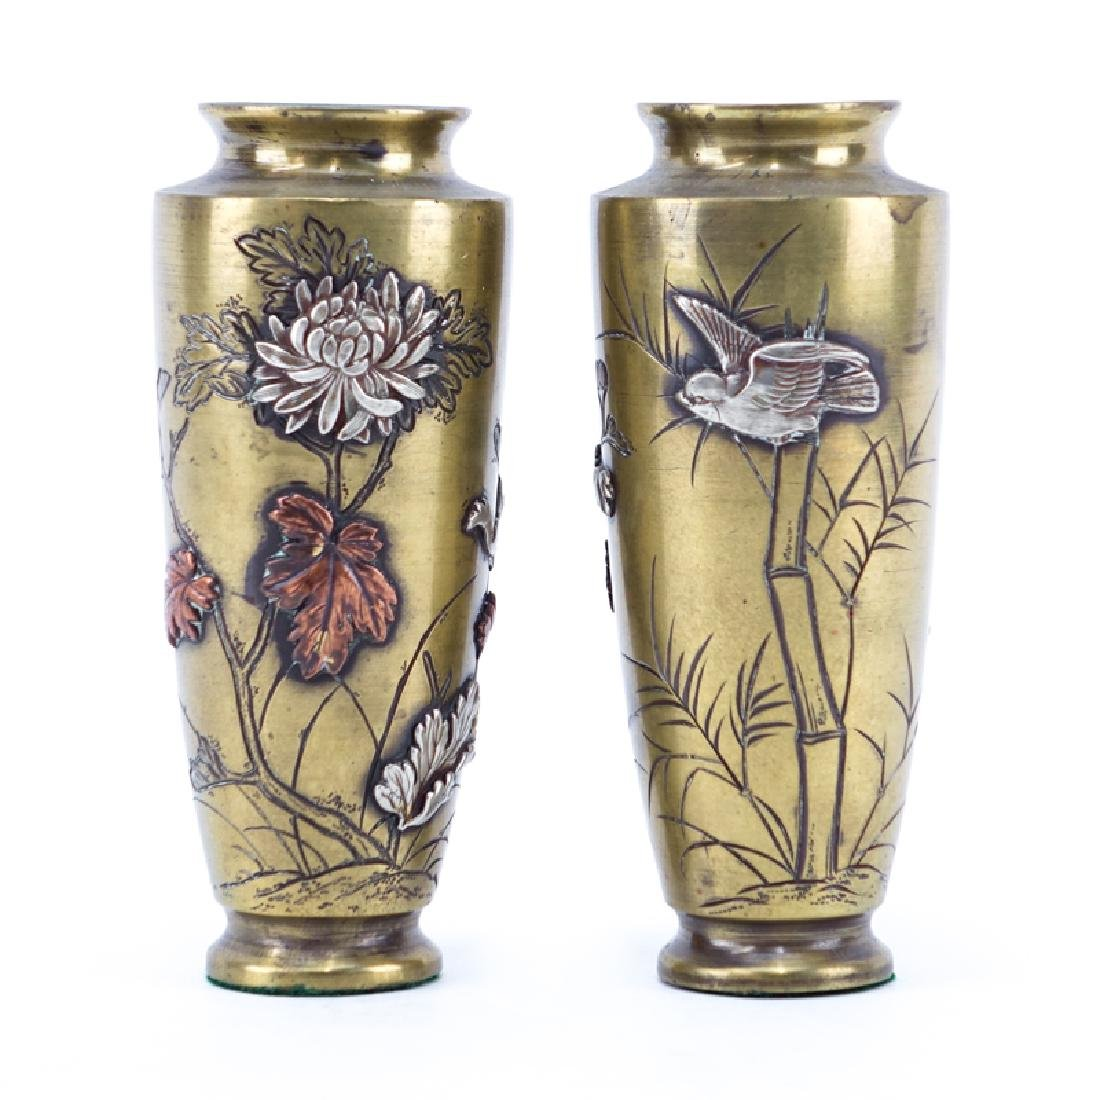 Pair of Japanese Gilt Bronze Mixed Metal Vases with